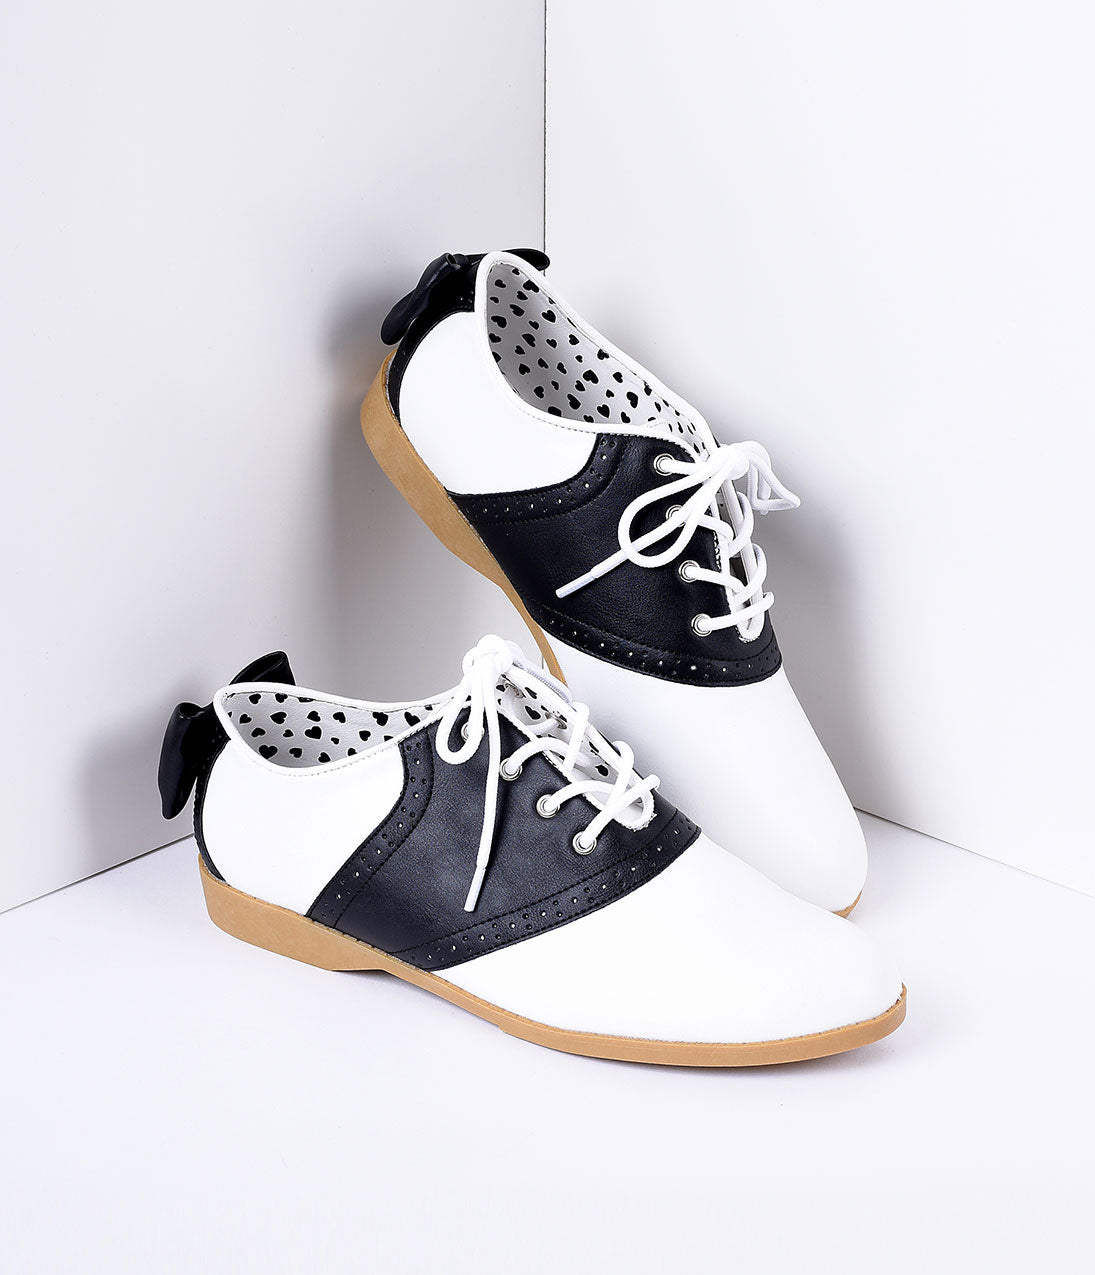 Saddle Shoes History Black  White Classic Lace Up Bow Saddle Shoes $48.00 AT vintagedancer.com